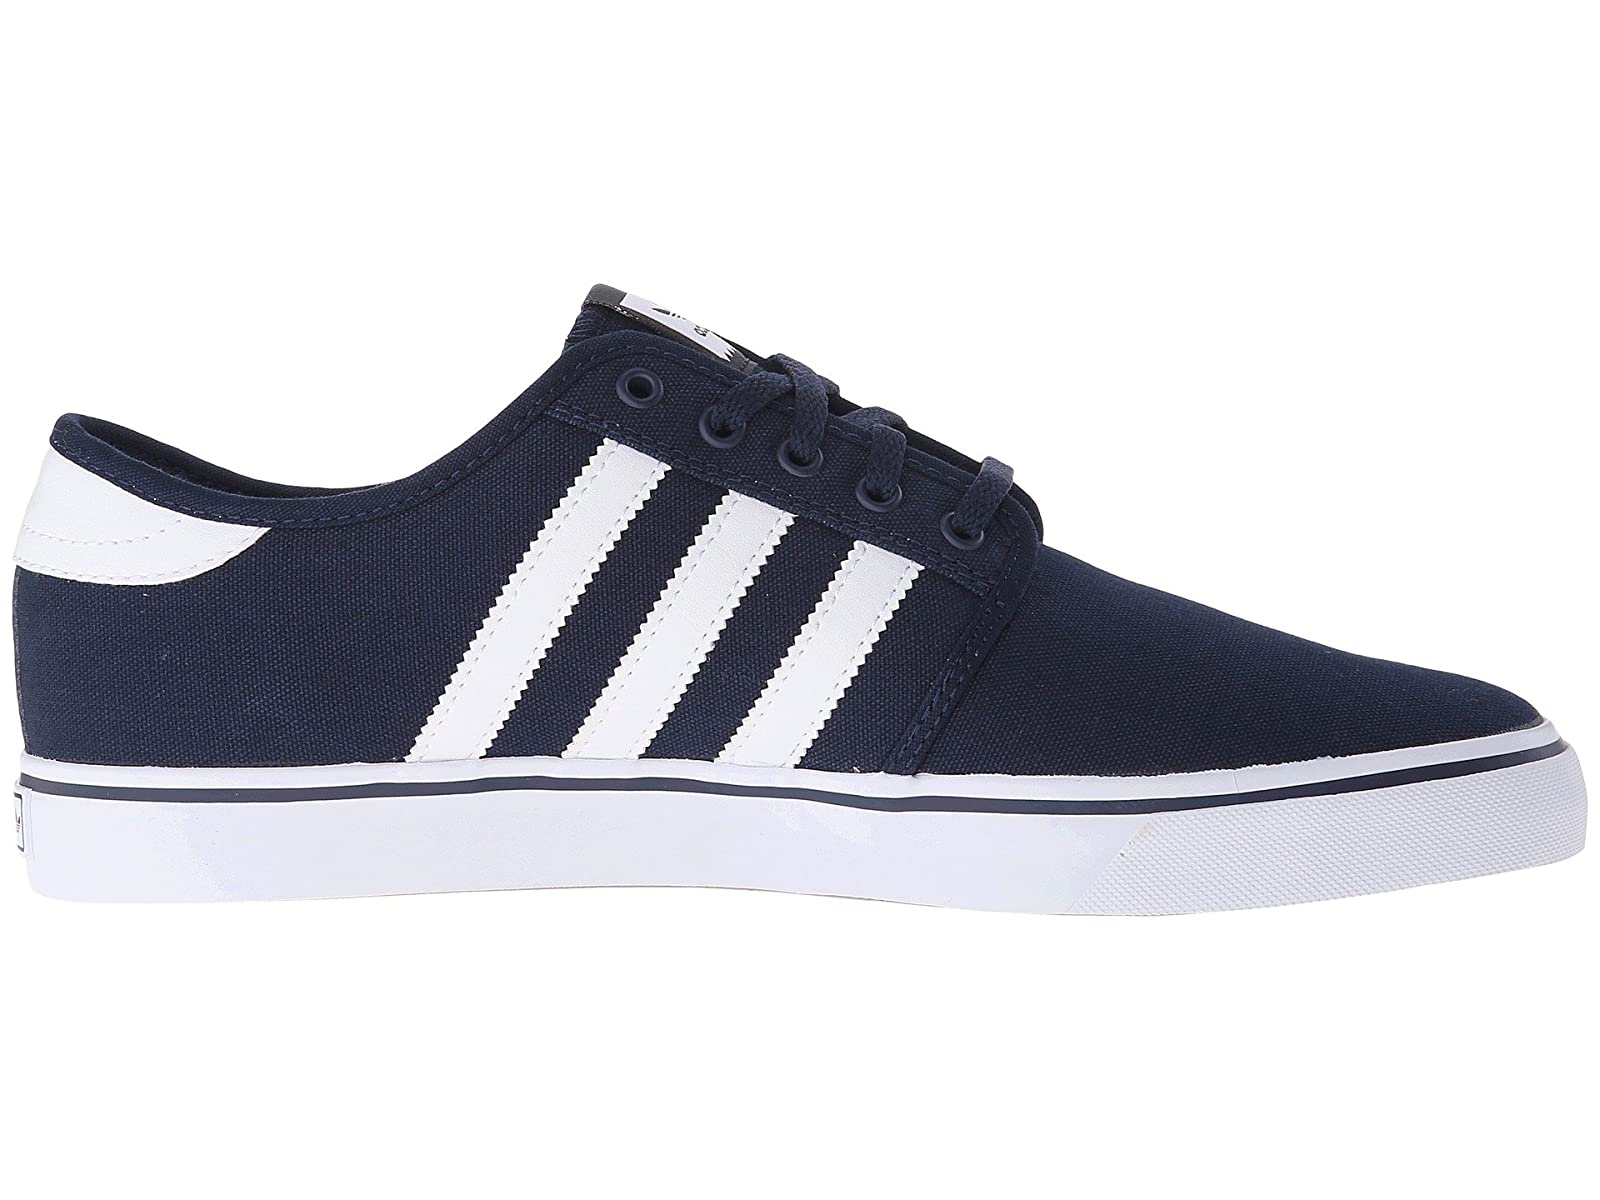 Gentlemen/Ladies adidas Skateboarding Skateboarding Skateboarding Seeley Diversified latest design 1eda78